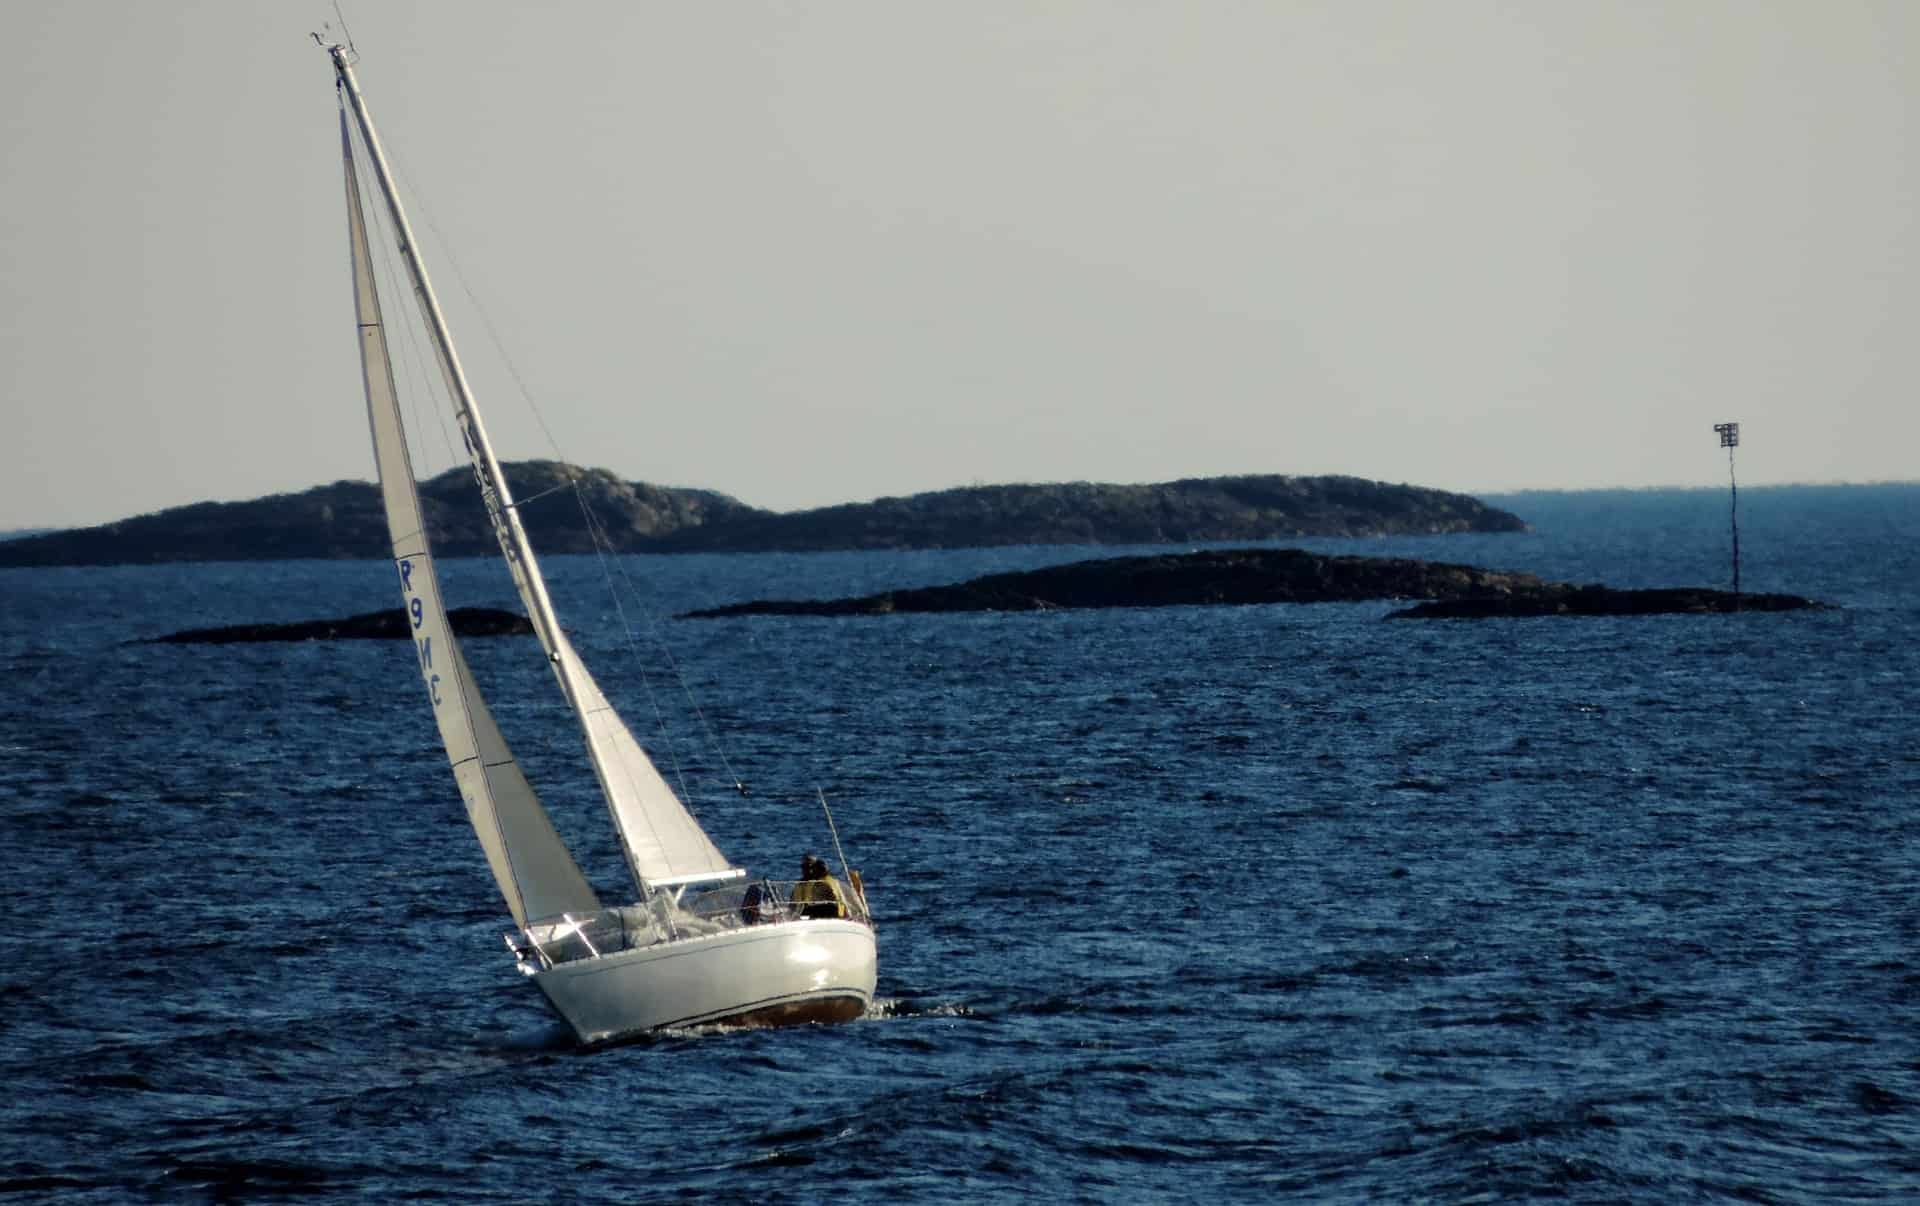 start sailing - yacht sailing with small islands in the background